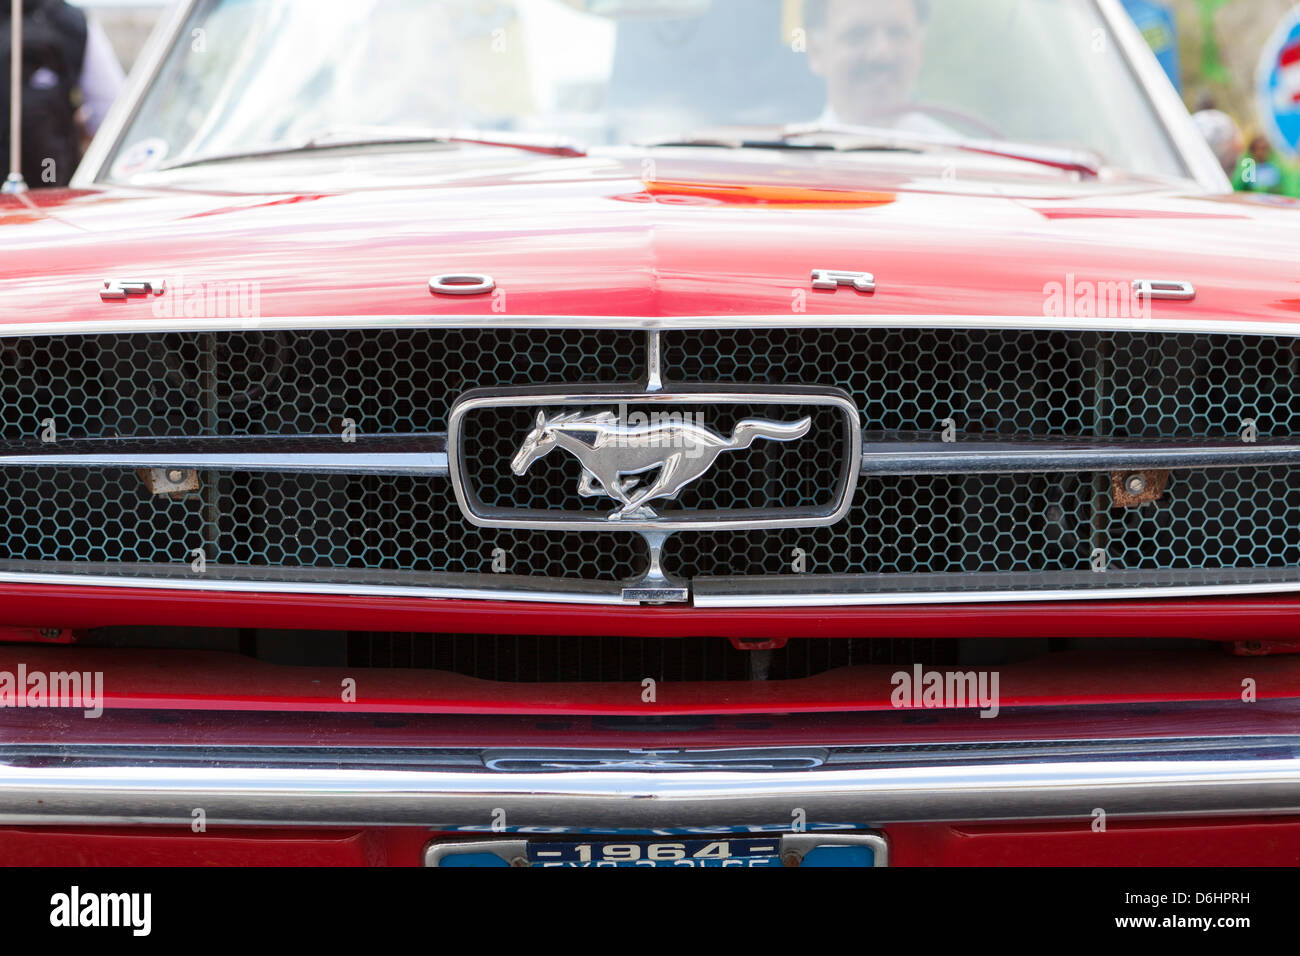 Super Ford Mustang Logo Stock Photos & Ford Mustang Logo Stock Images  JQ15